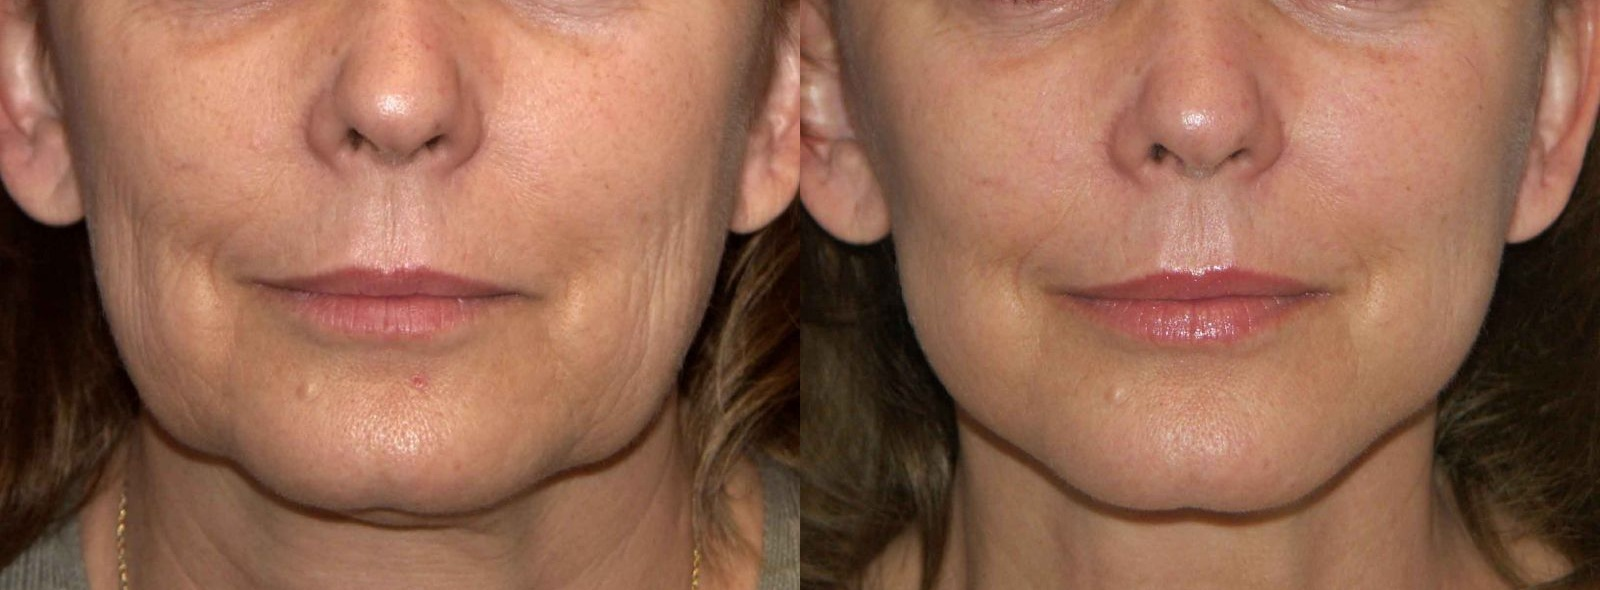 cosmetic-before-after-lower-face-rejuvenation-female-40s